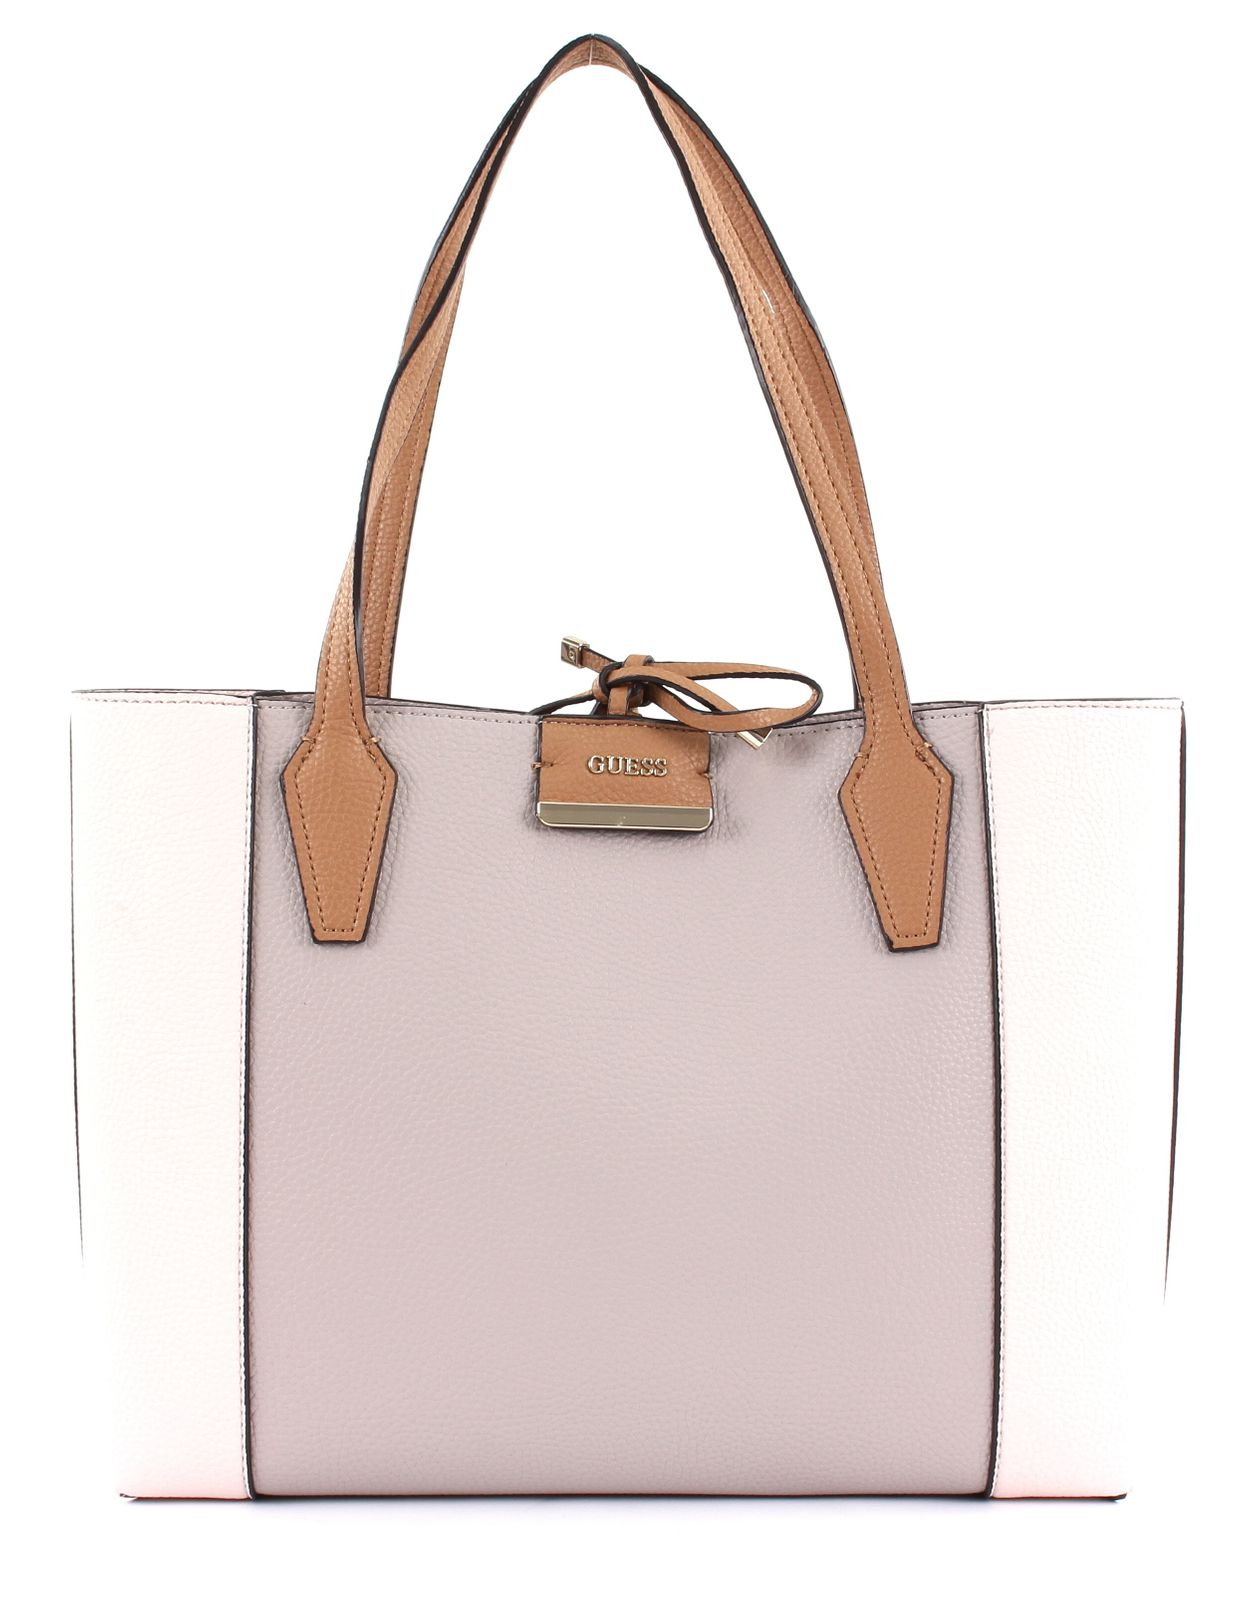 407866f27b4 GUESS-Bobbi-Inside-Out-Tote-Taupe---Cameo-159046.jpg